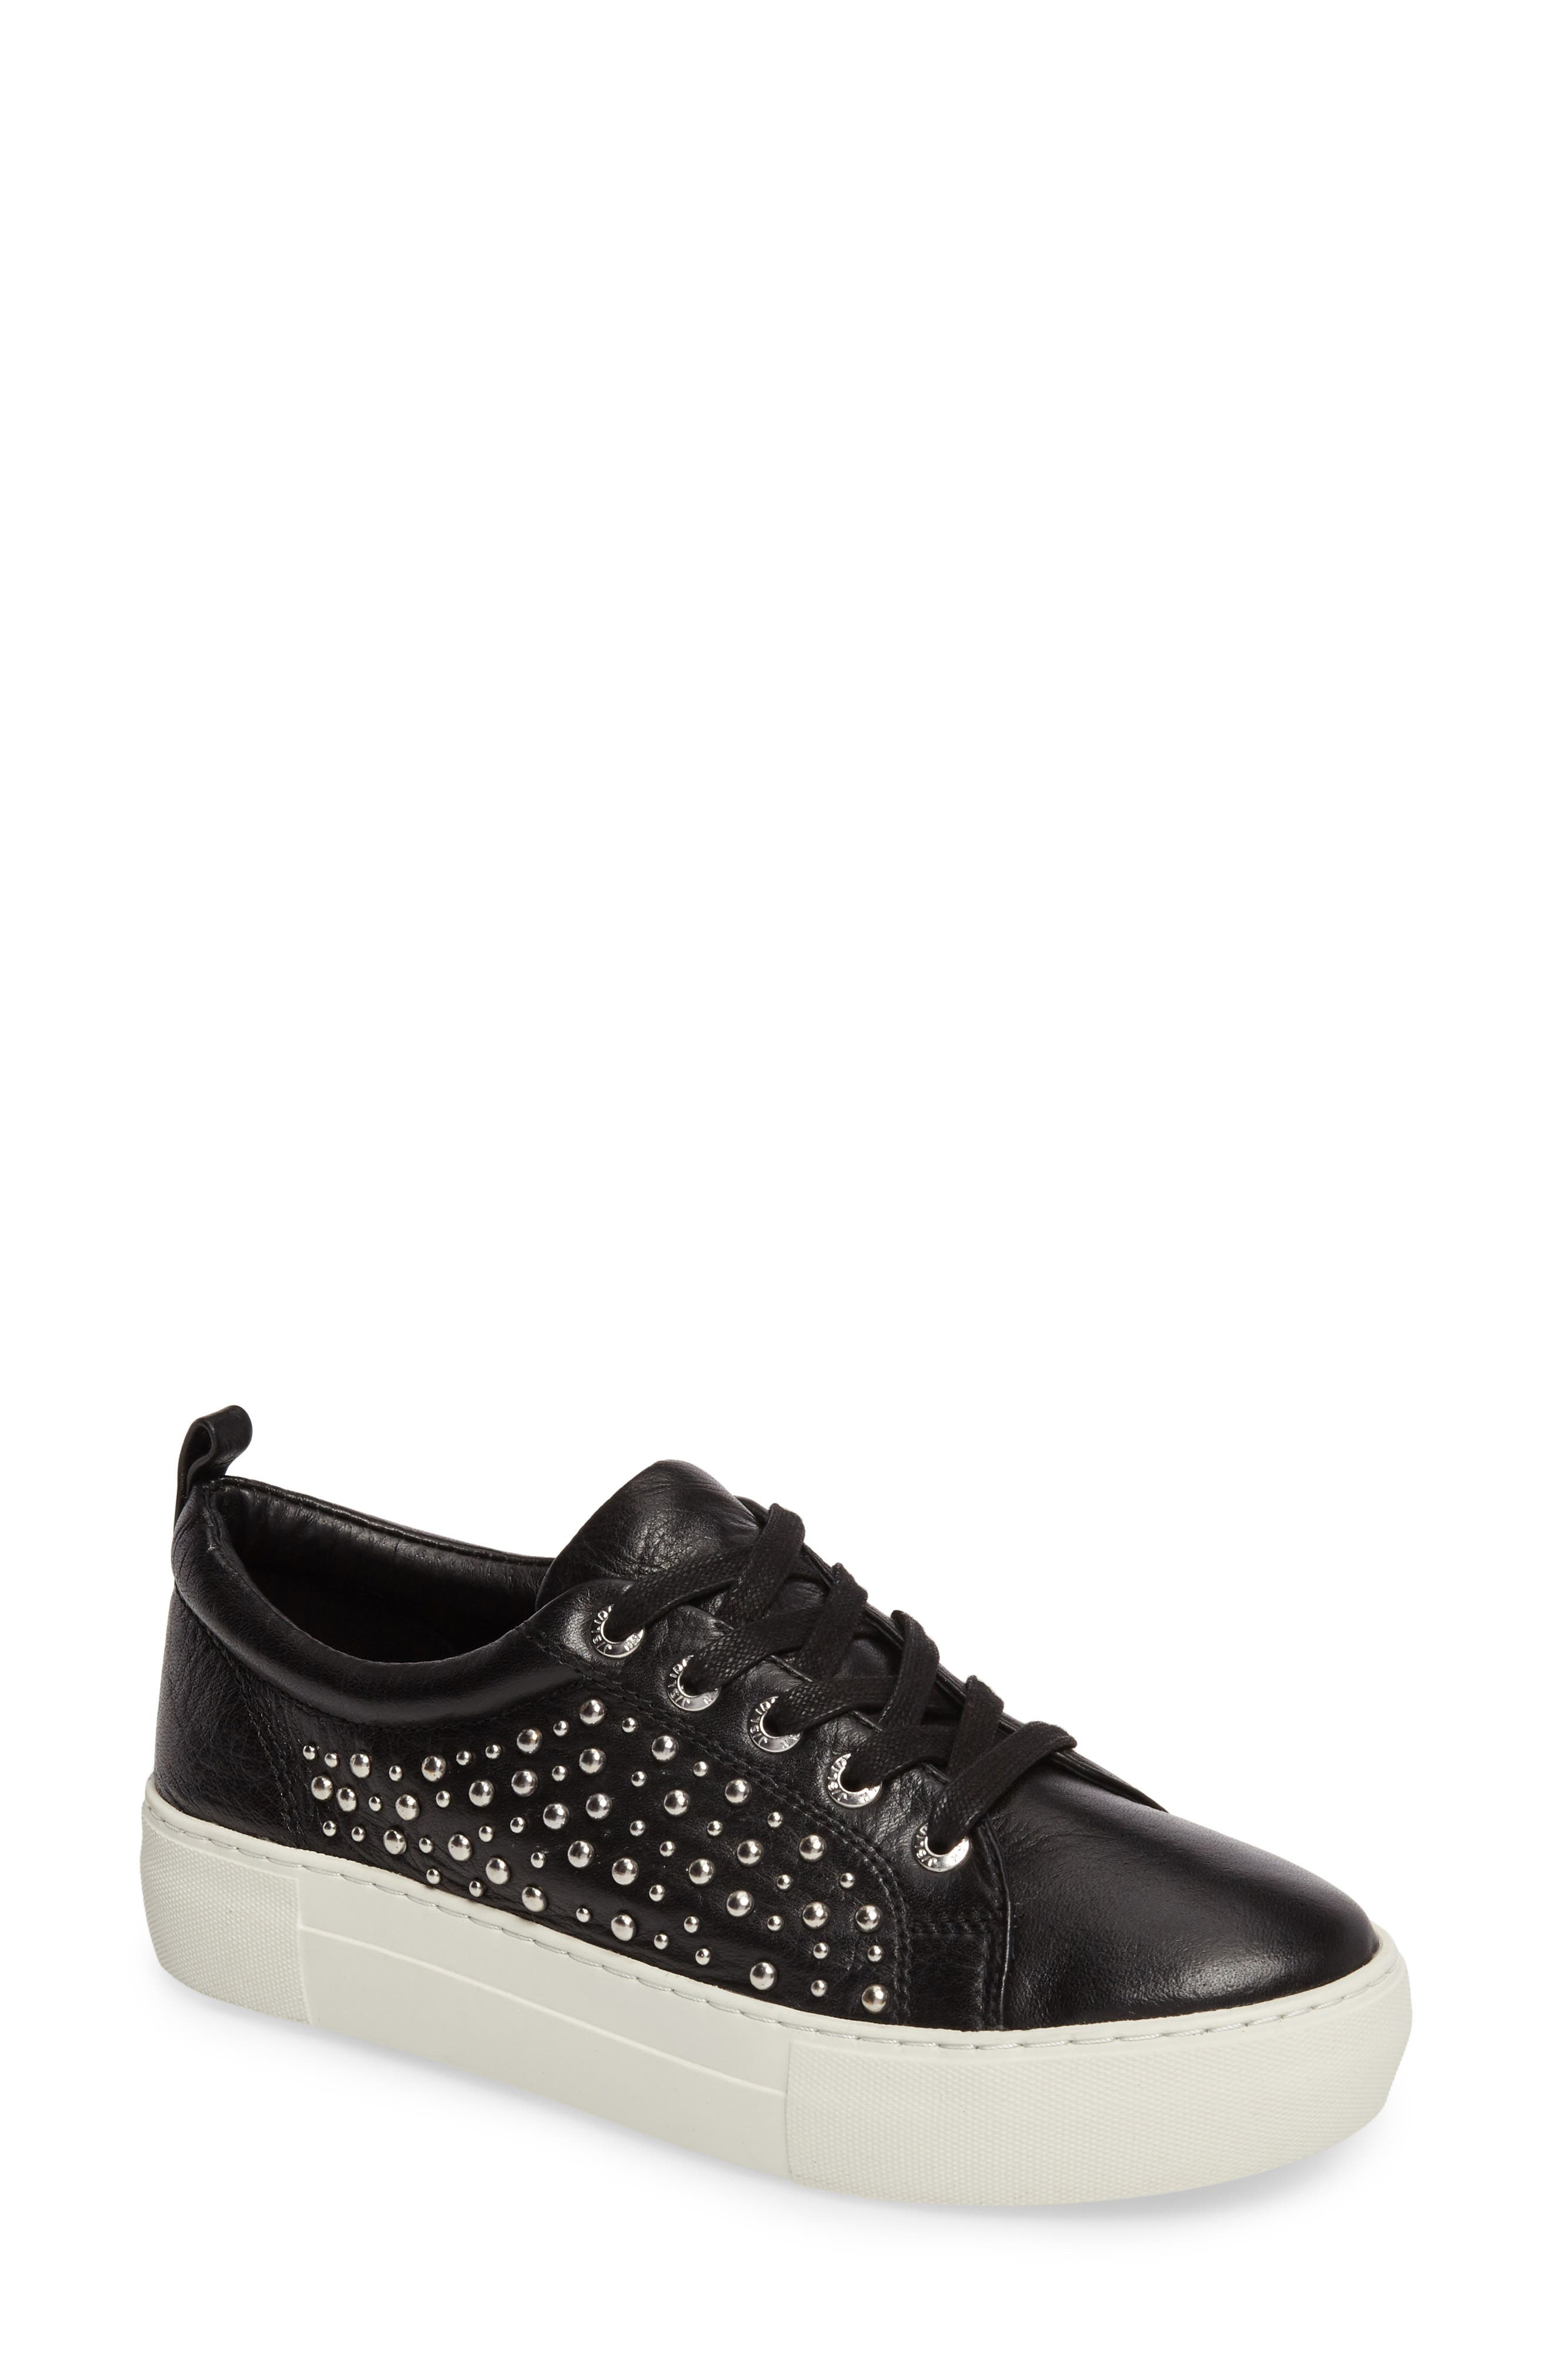 Ambrosia Studded Lace-Up Sneaker,                         Main,                         color, Black Leather